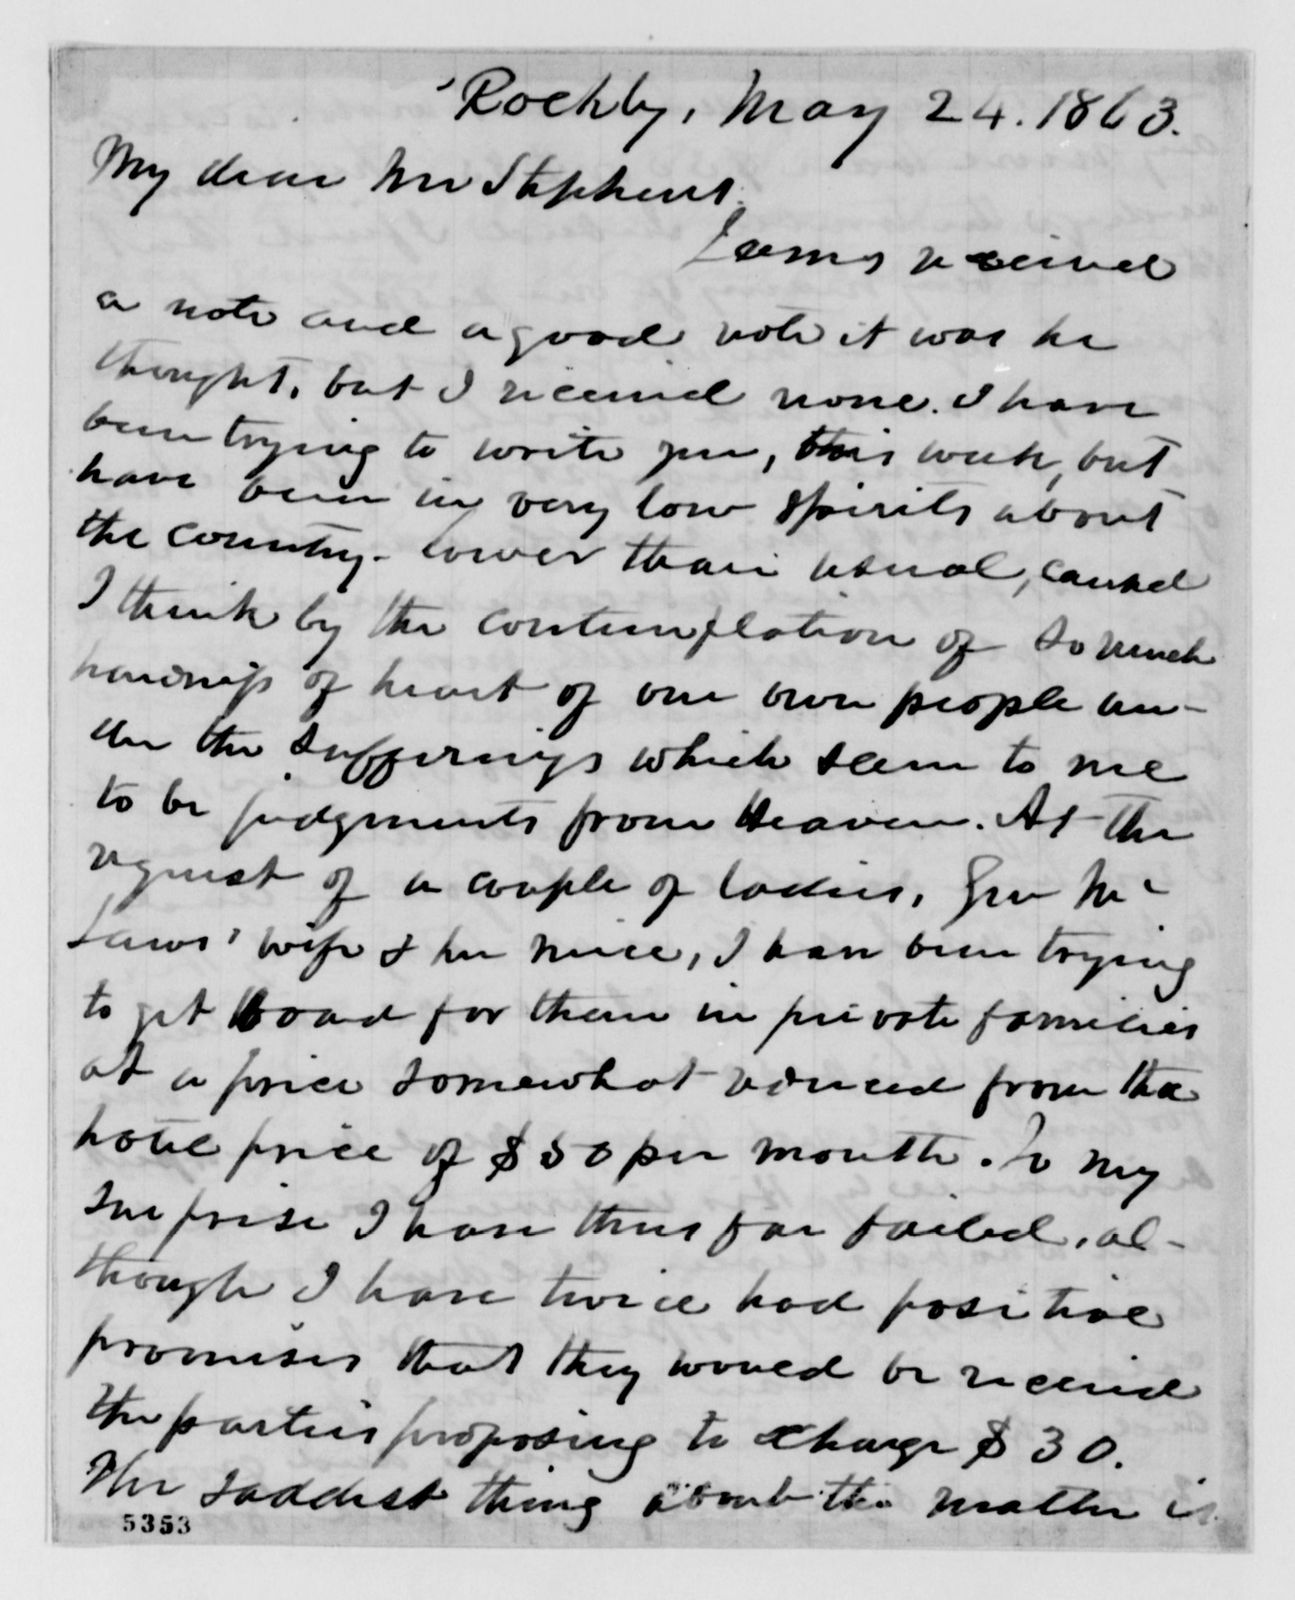 Alexander Hamilton Stephens Papers: General Correspondence, 1784-1886; 1863, Feb. 28-July 17